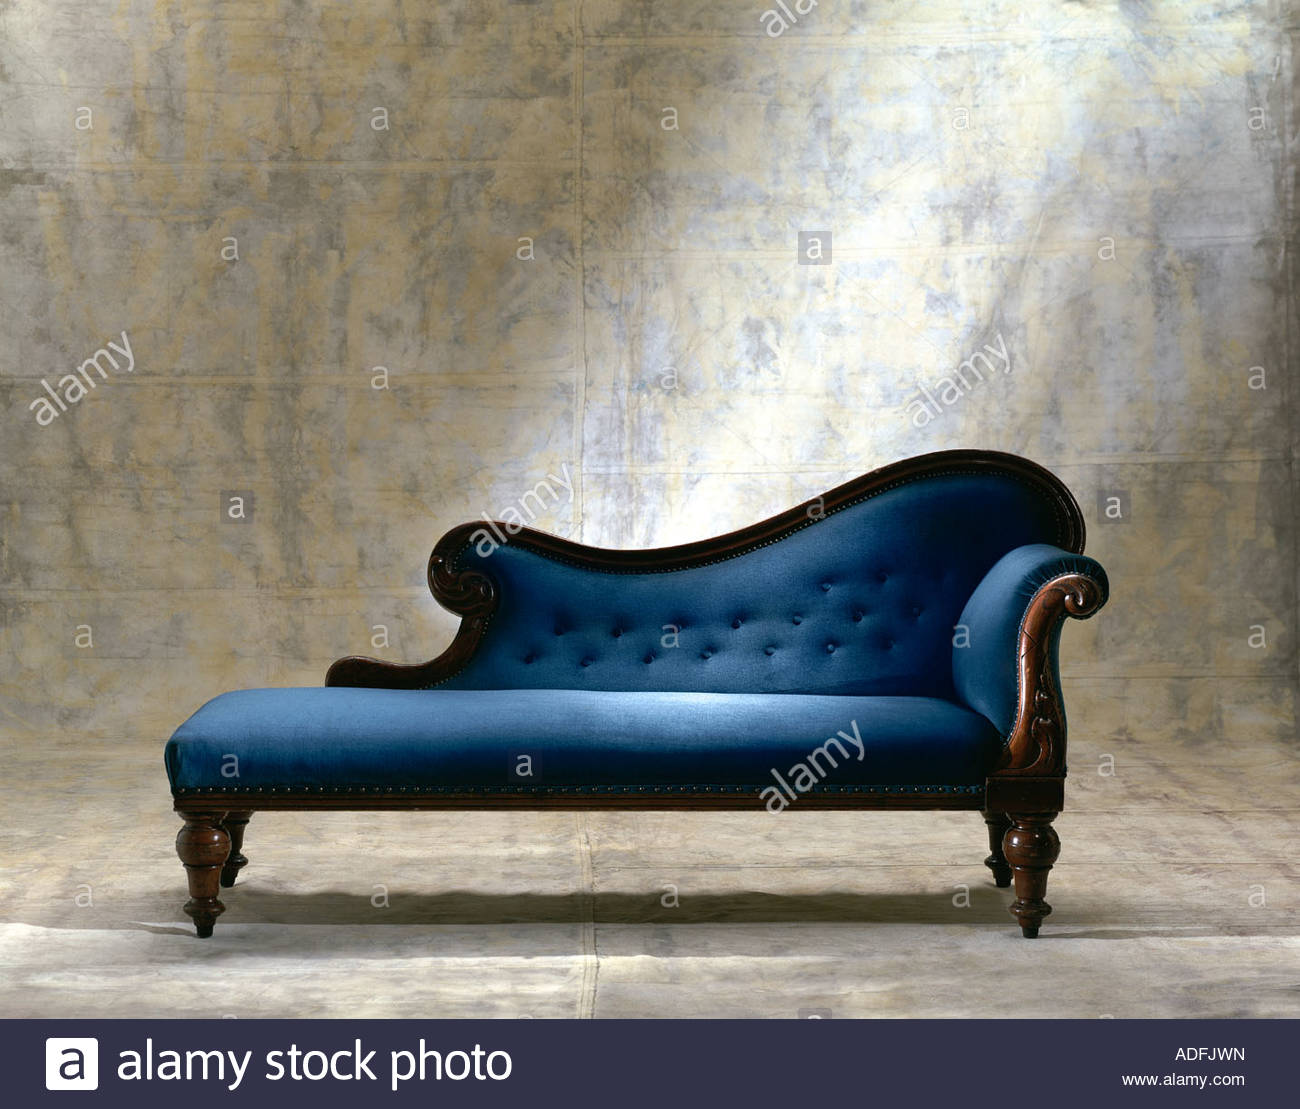 Blue chaise longue sofa on canvas background stock photo for Blue chaise sofa